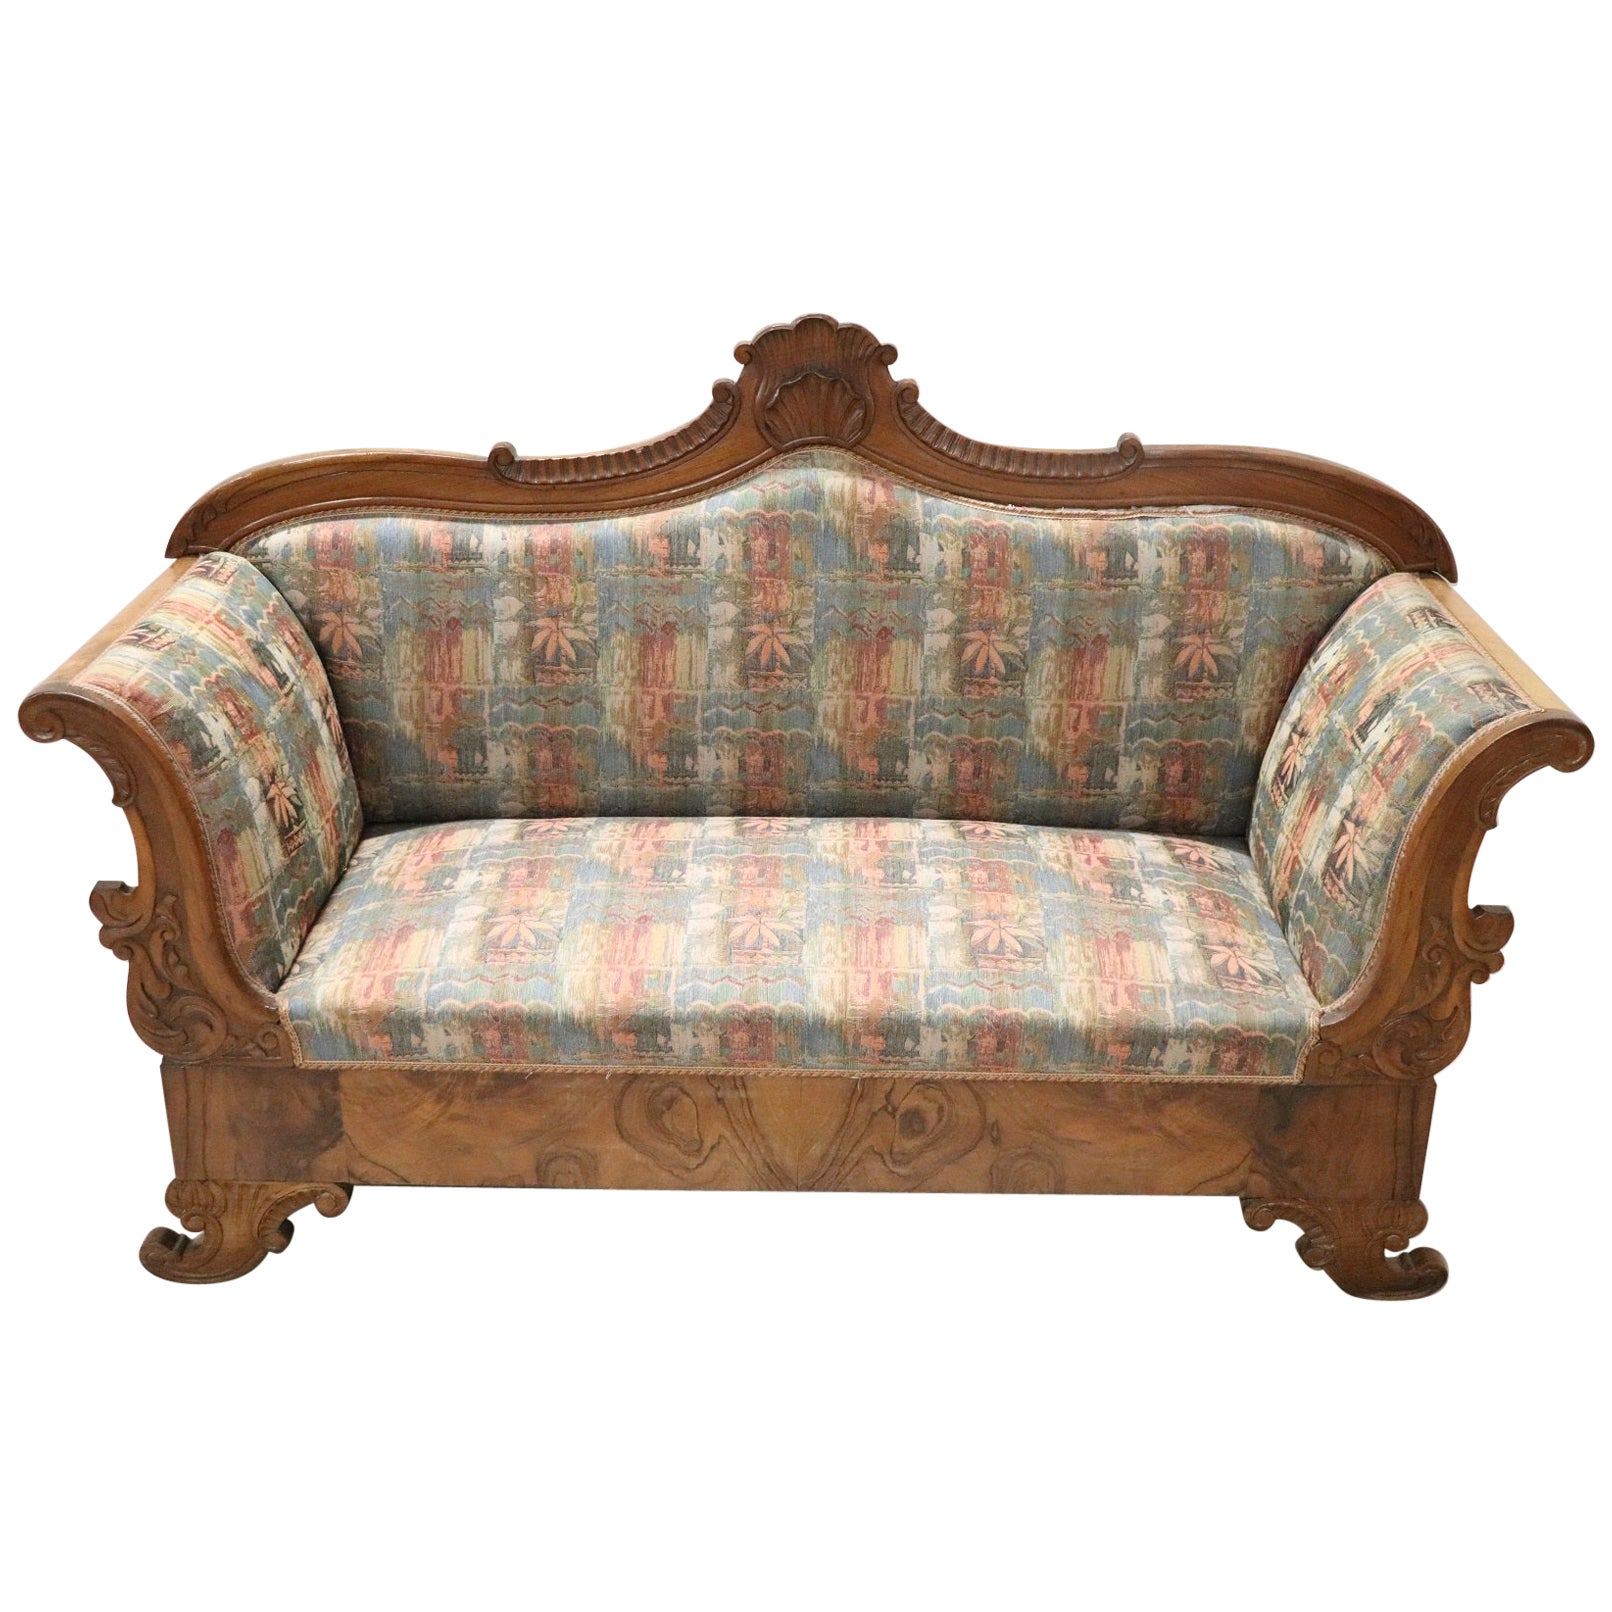 19th Century Italian Charles X Carved Walnut Antique Settee